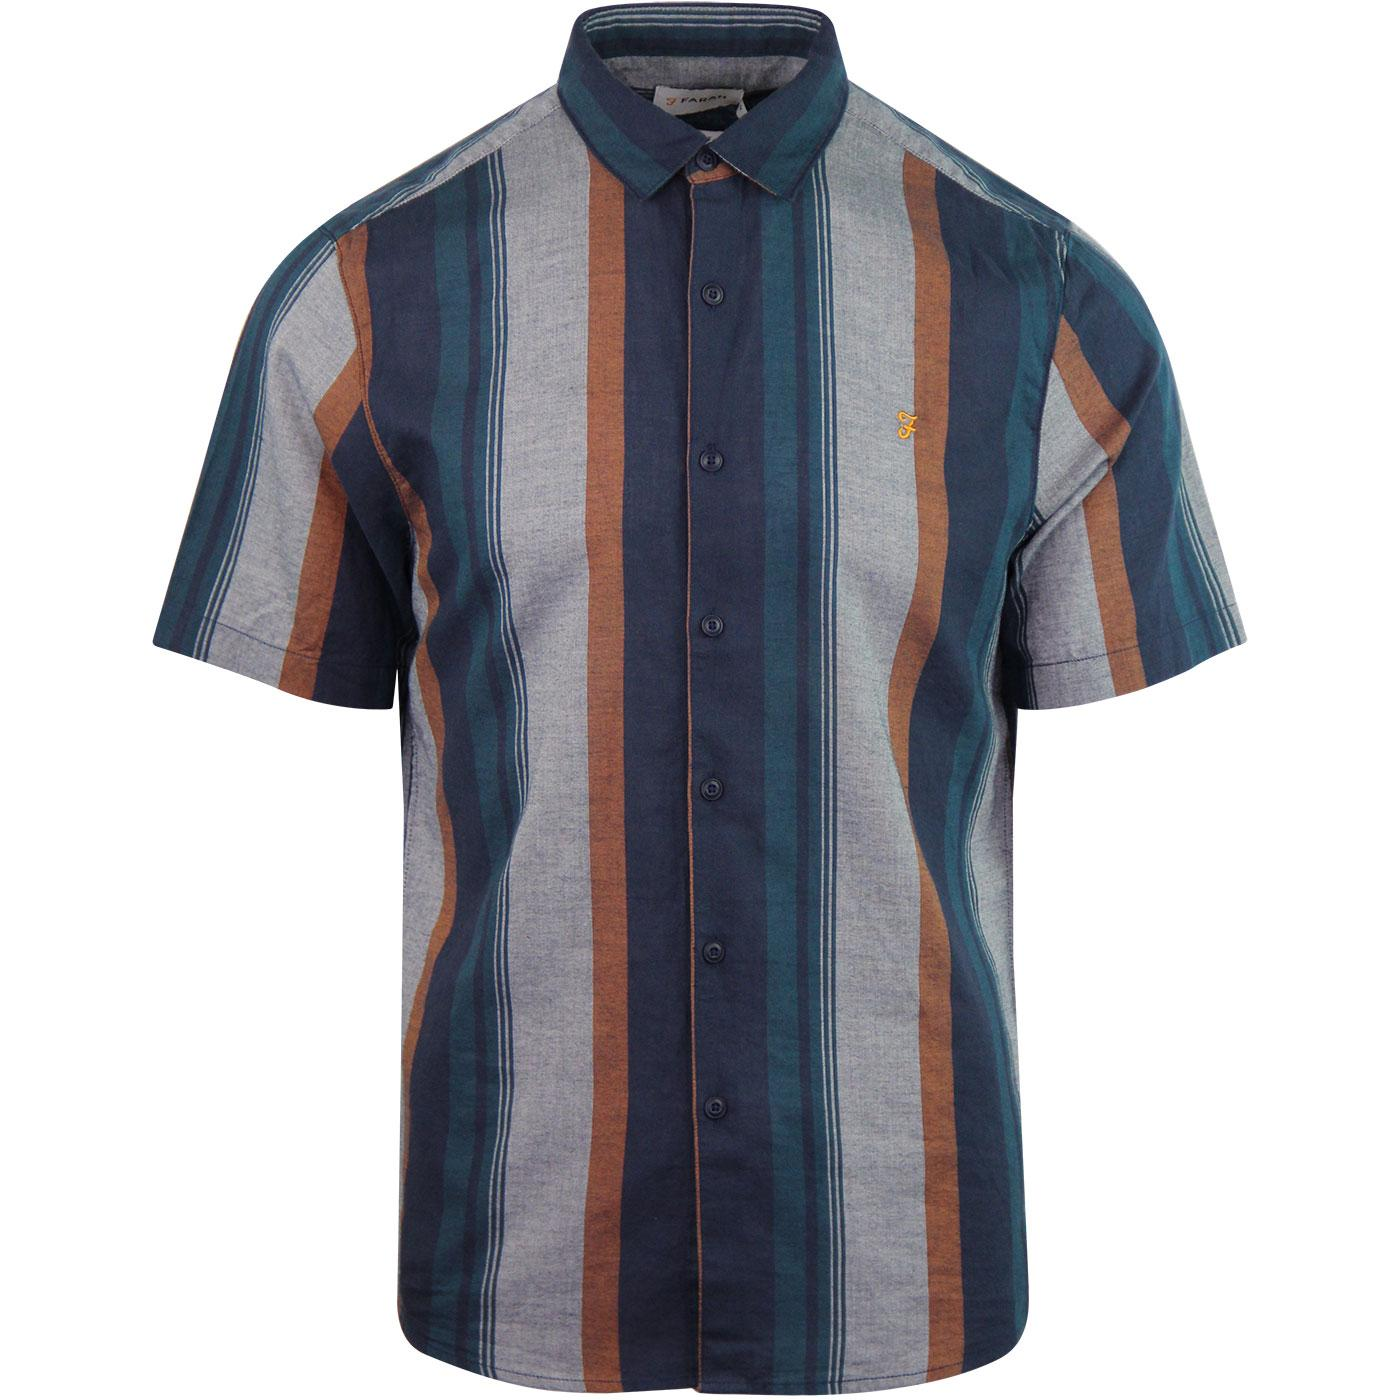 Donnally FARAH Retro 60s Mod Texture Stripe Shirt